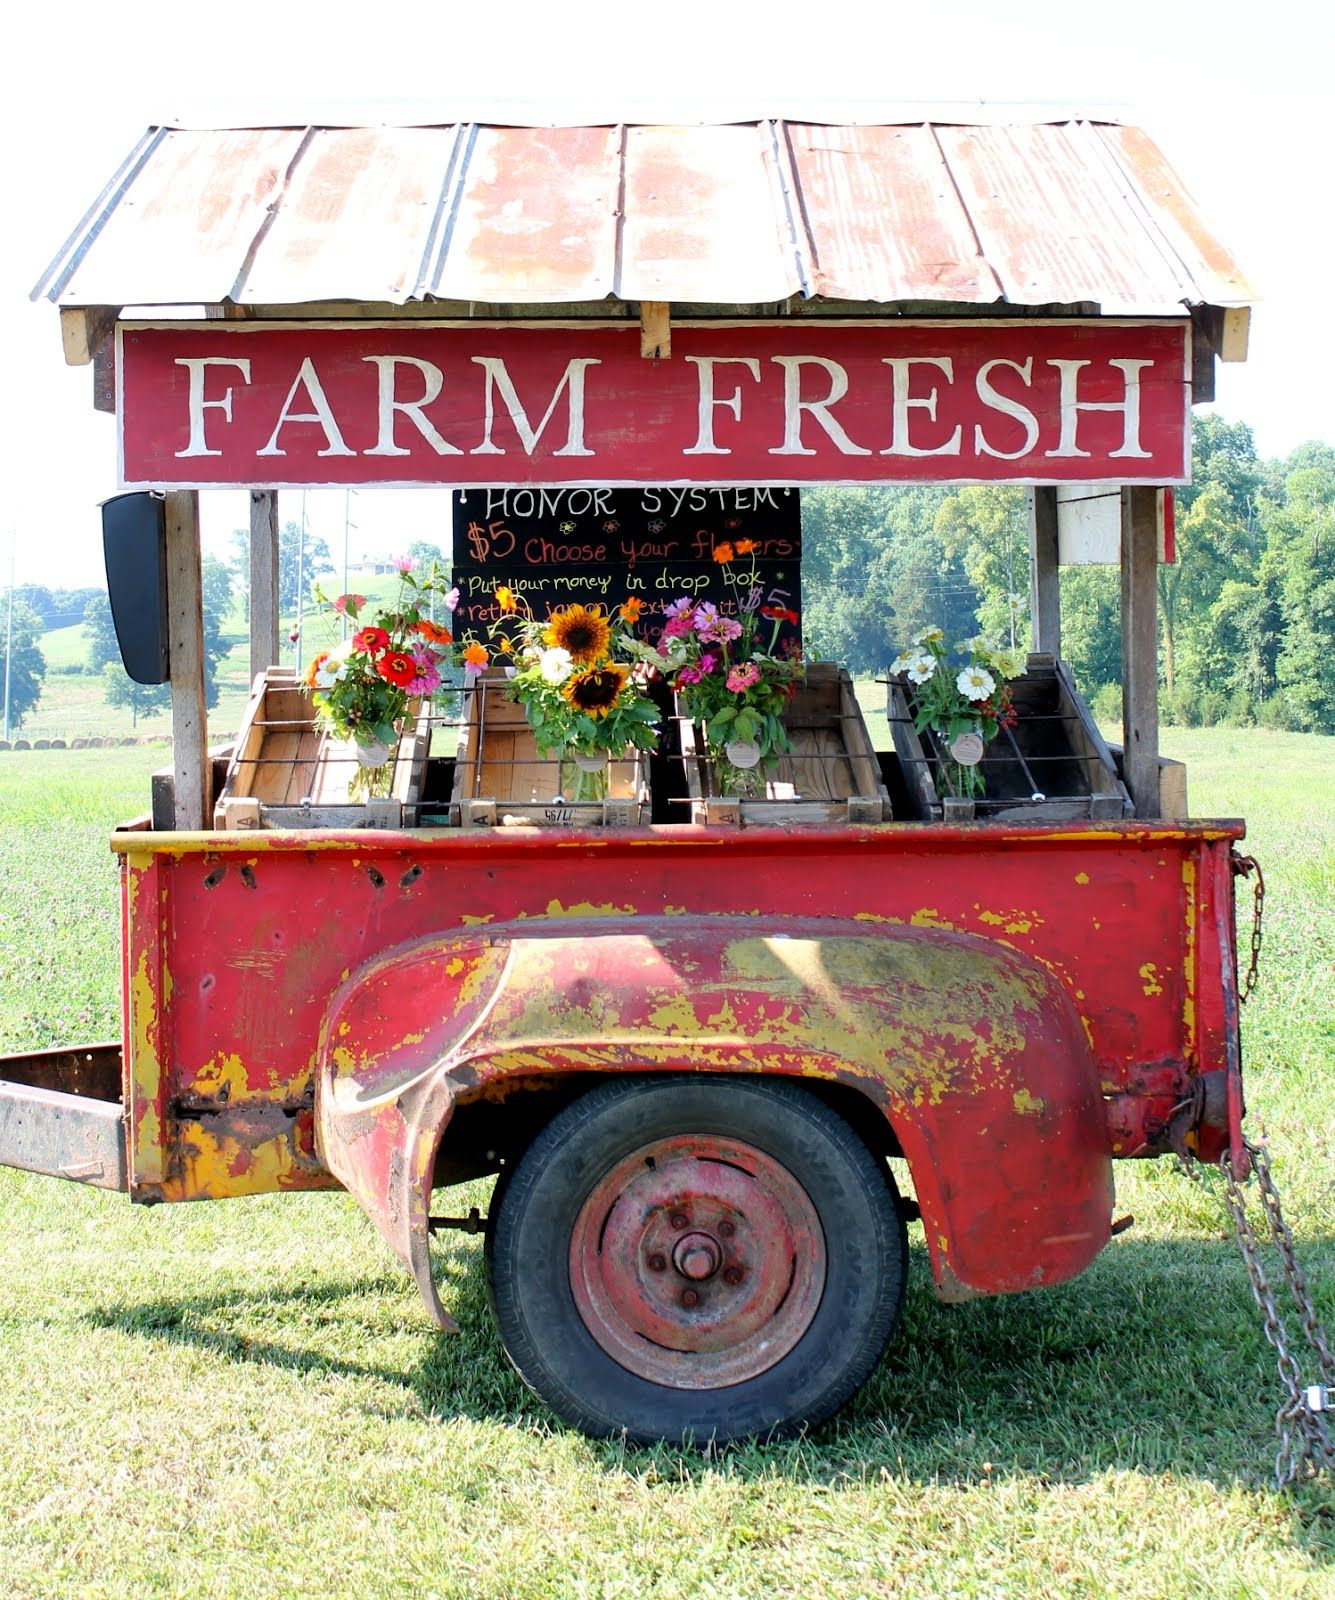 Vegetable Stand Designs : So stinking cute adorable honor system farm stand for